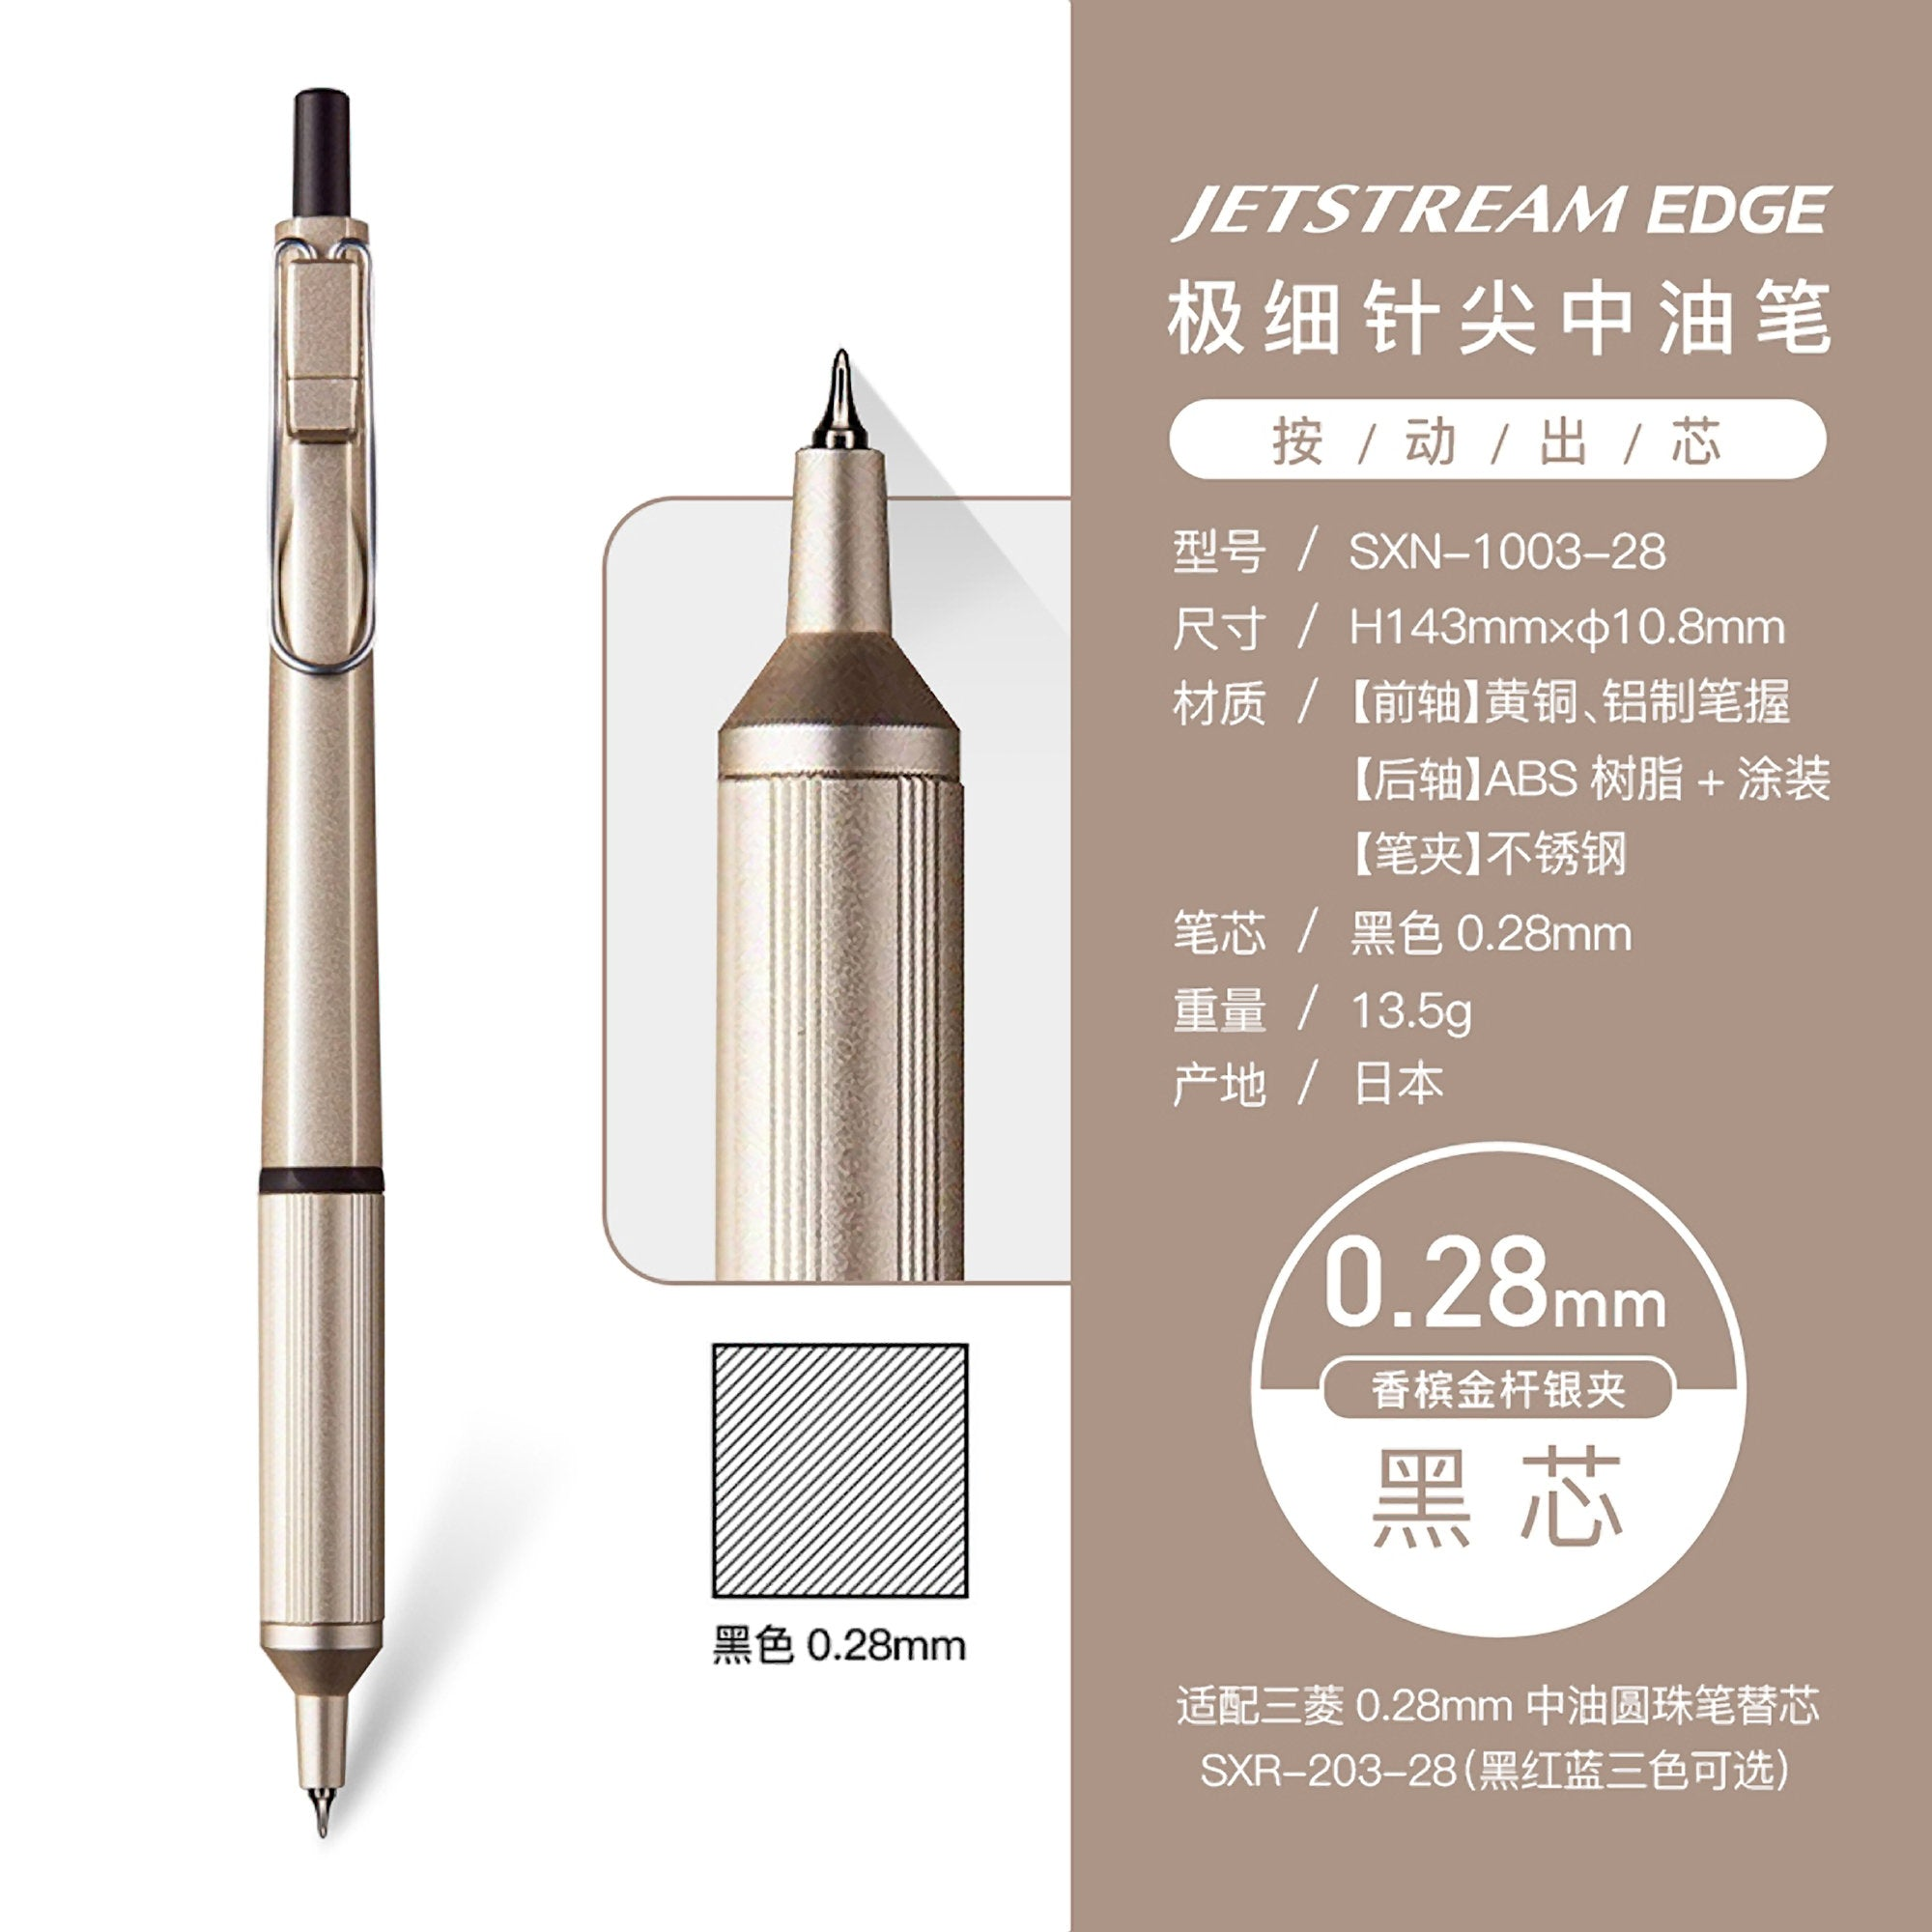 CHAMPAGNE Mitsubishi Jetstream Edge 0.28mm Pen Oil-Based Ink | Ultra Fine Point Water Resistant Ink - The Stationery Life!